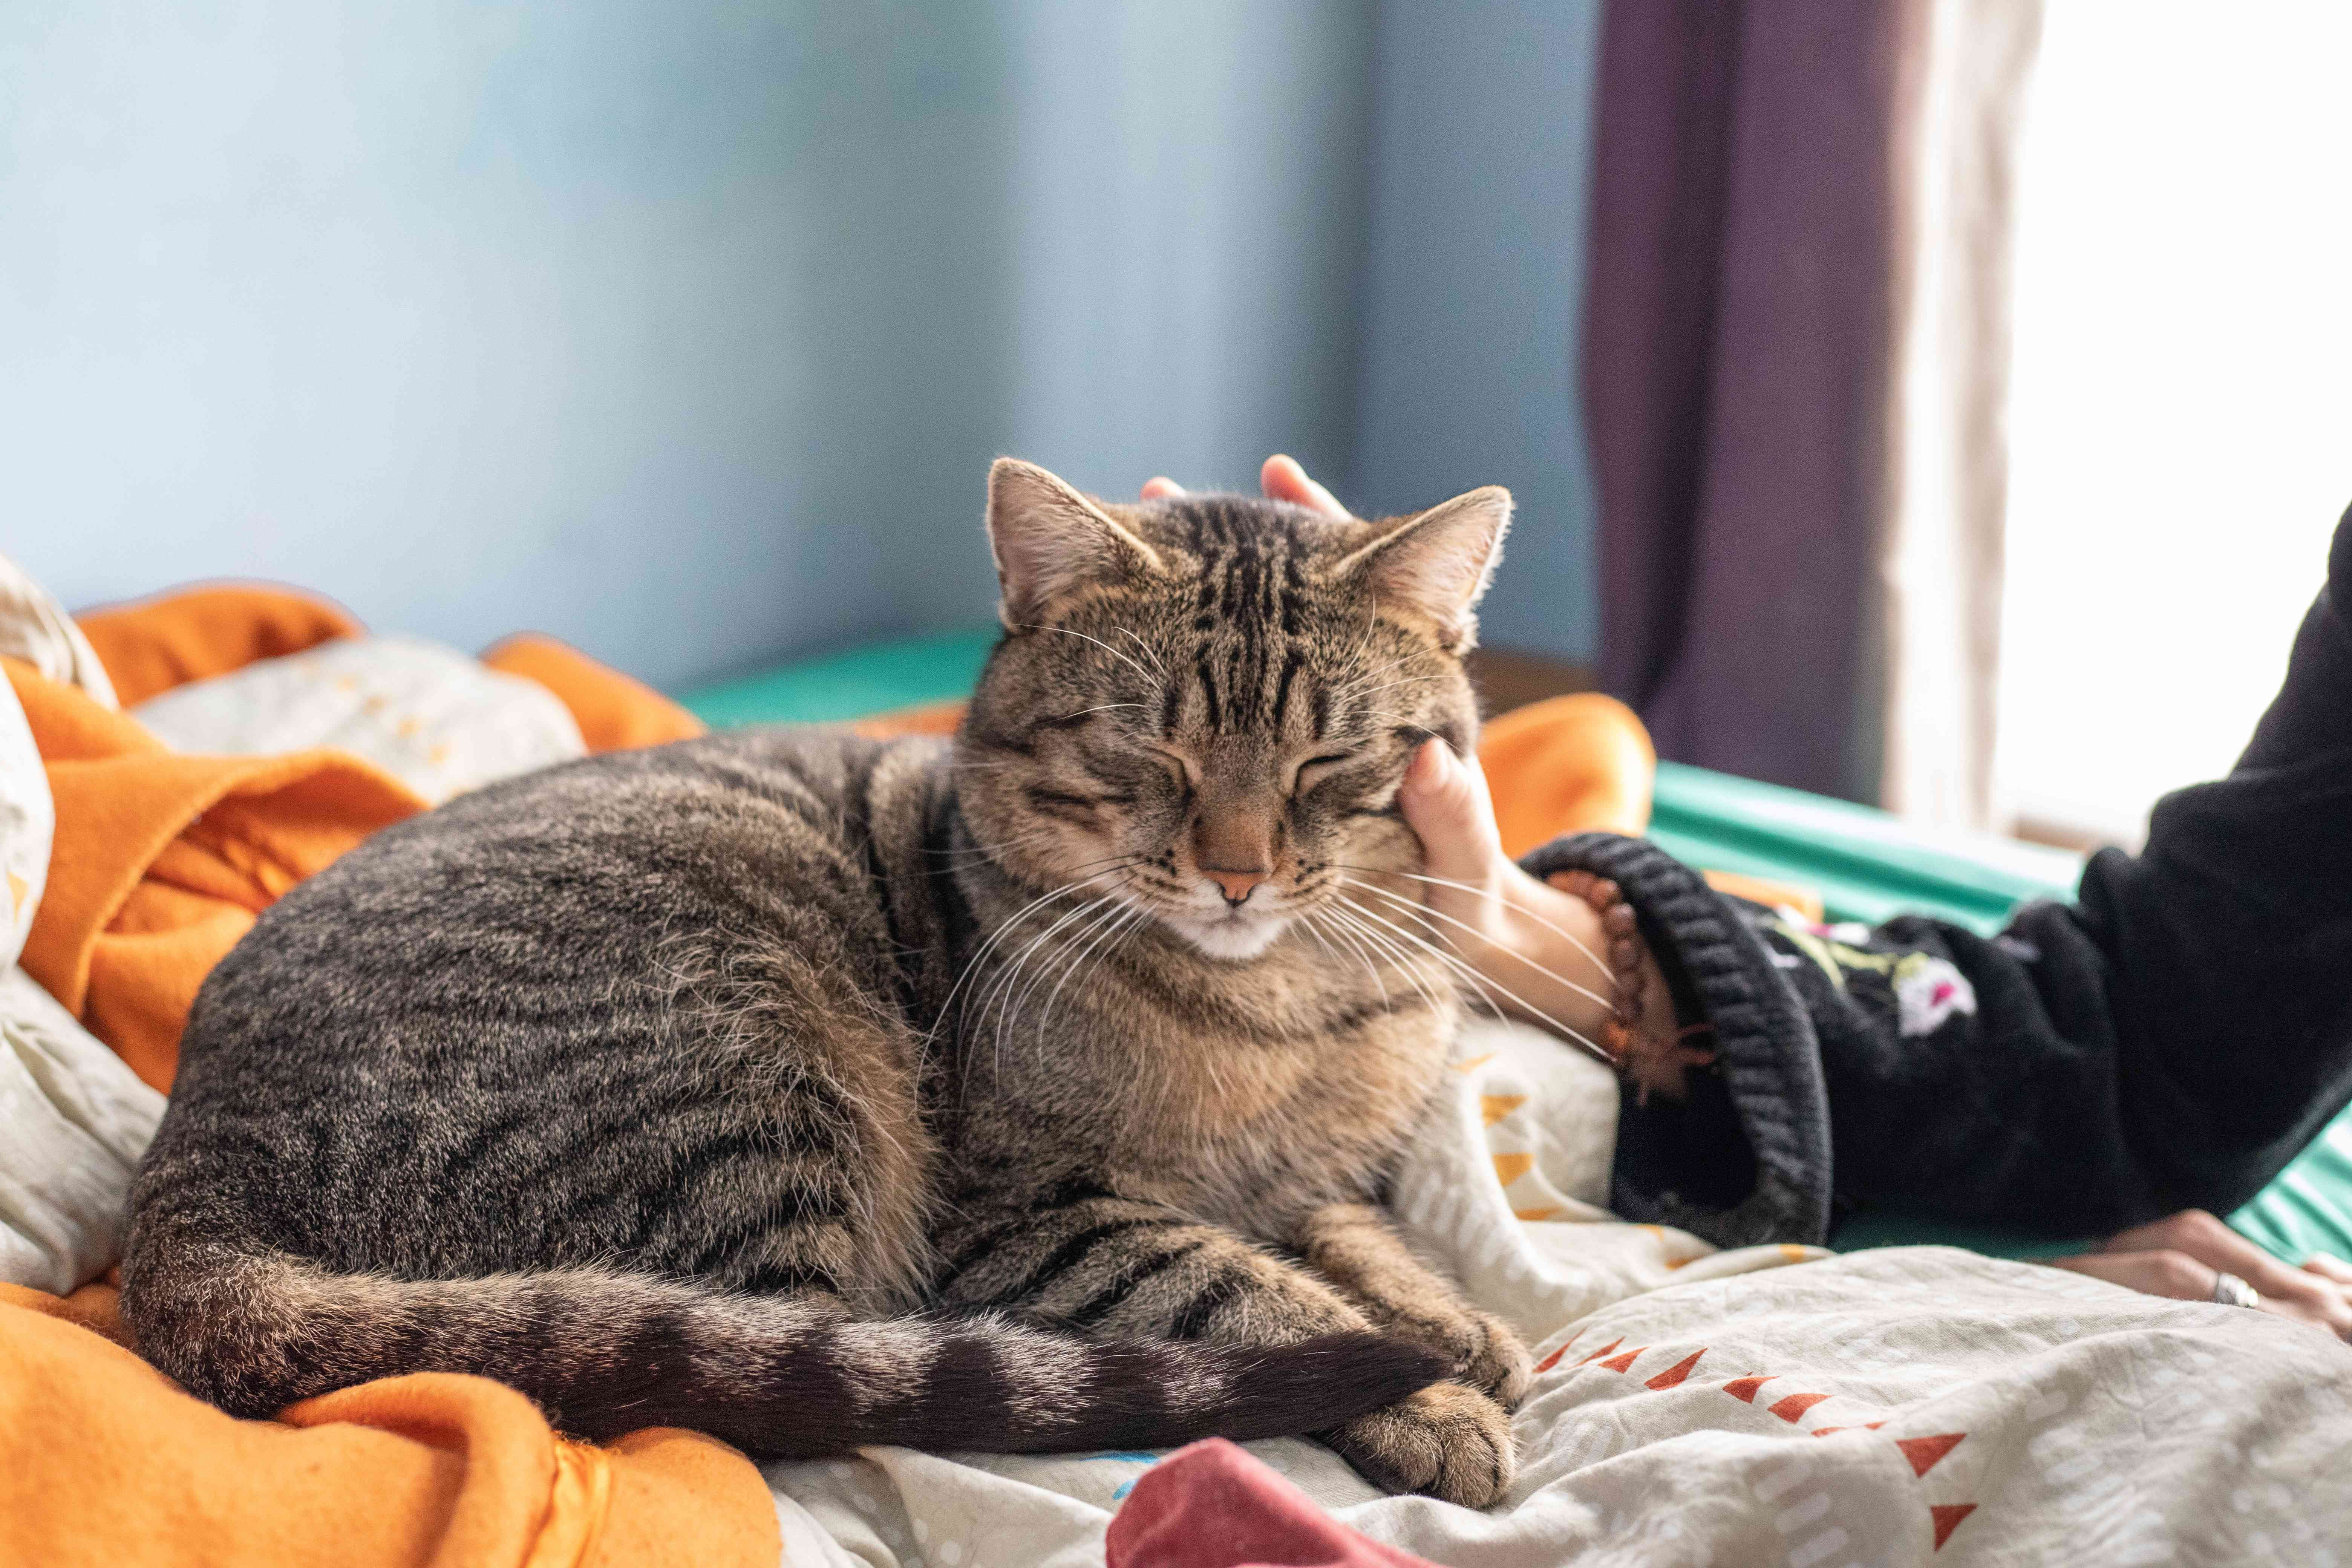 woman's arm pets cat while sitting on bed of blankets